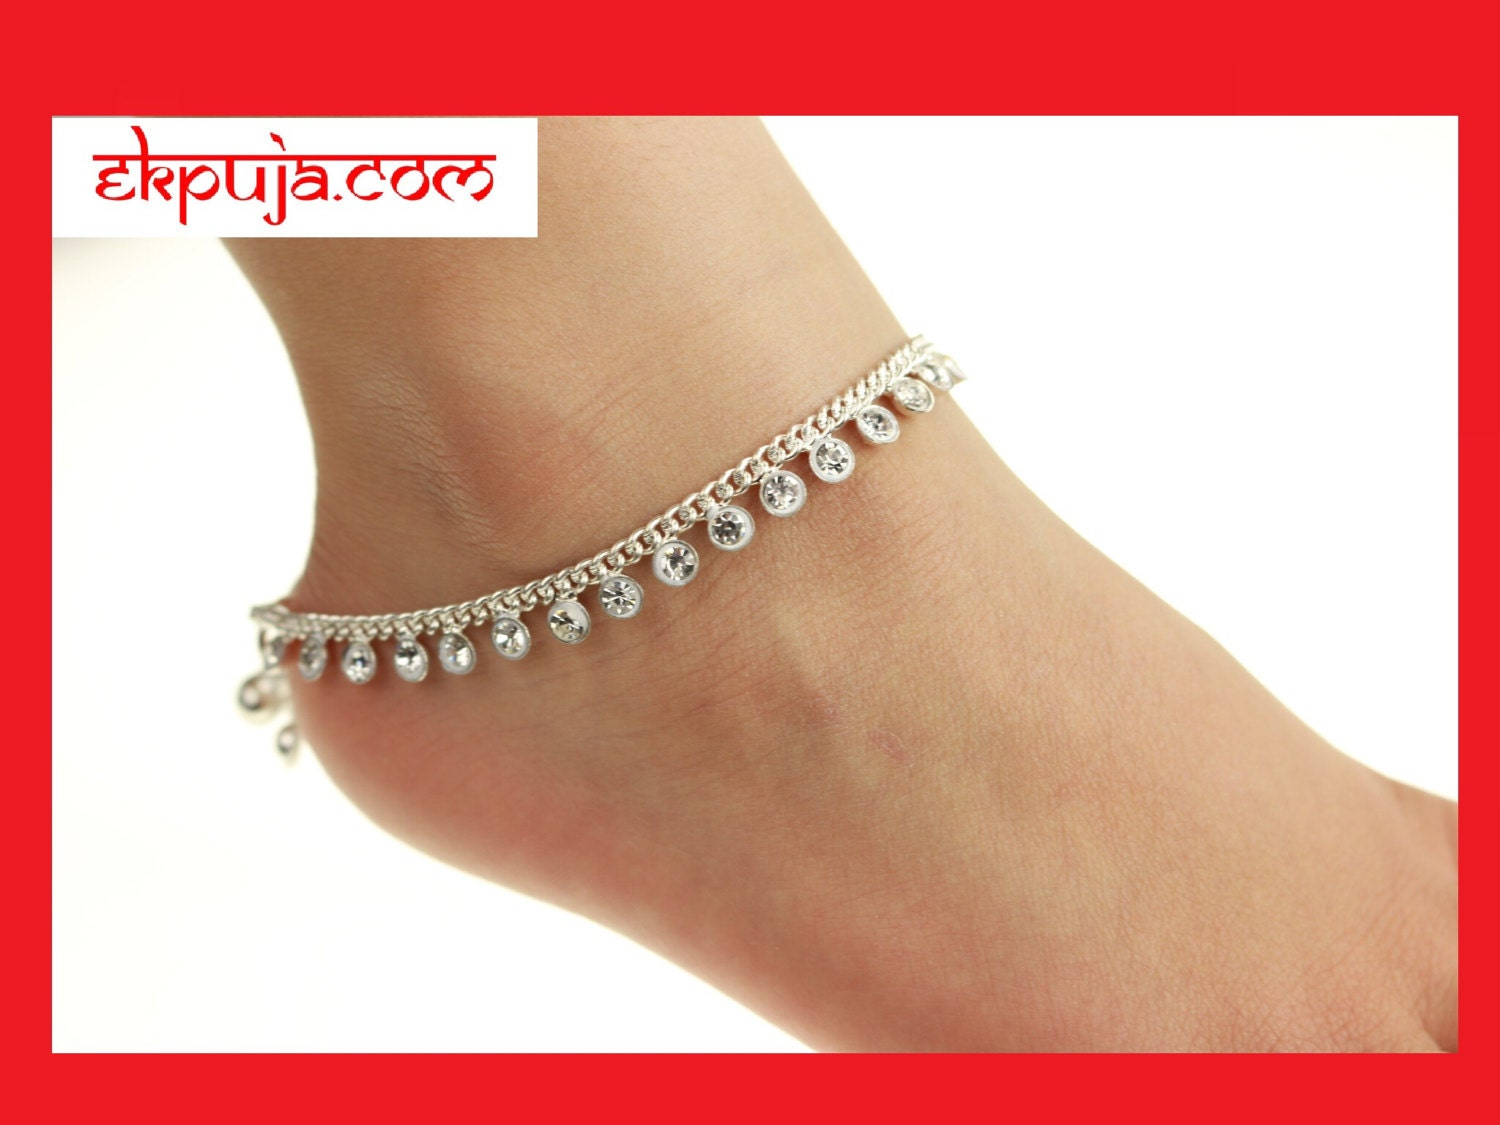 Stunning Diamonte Adult Anklet Payal Anklet Chain Bollywood Anklet Pair  Summer Wedding Indian Ankle Chain Anklet PAIR